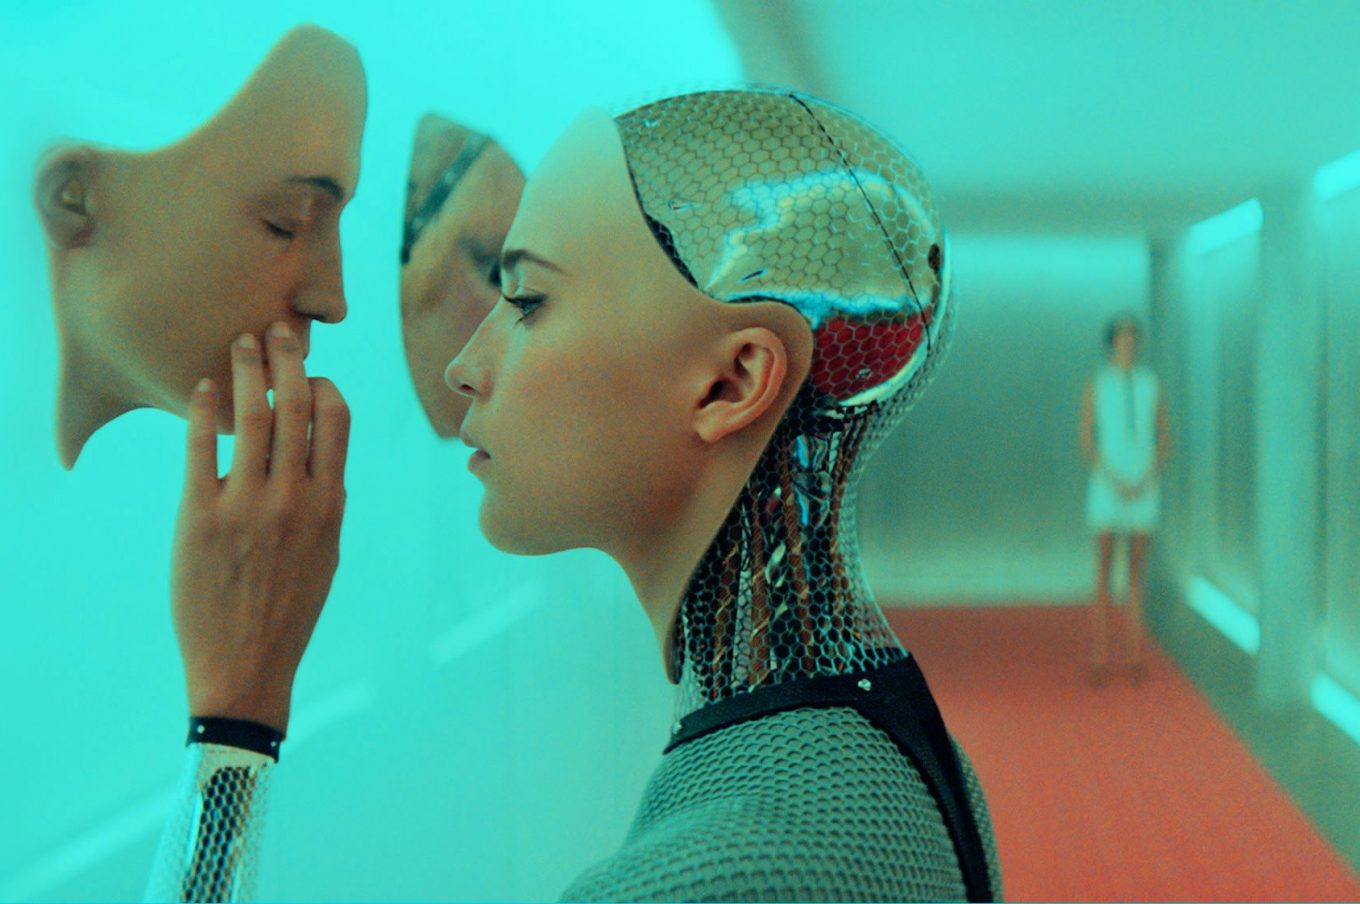 Guide to How Artificial Intelligence Can Change The World - Part 2